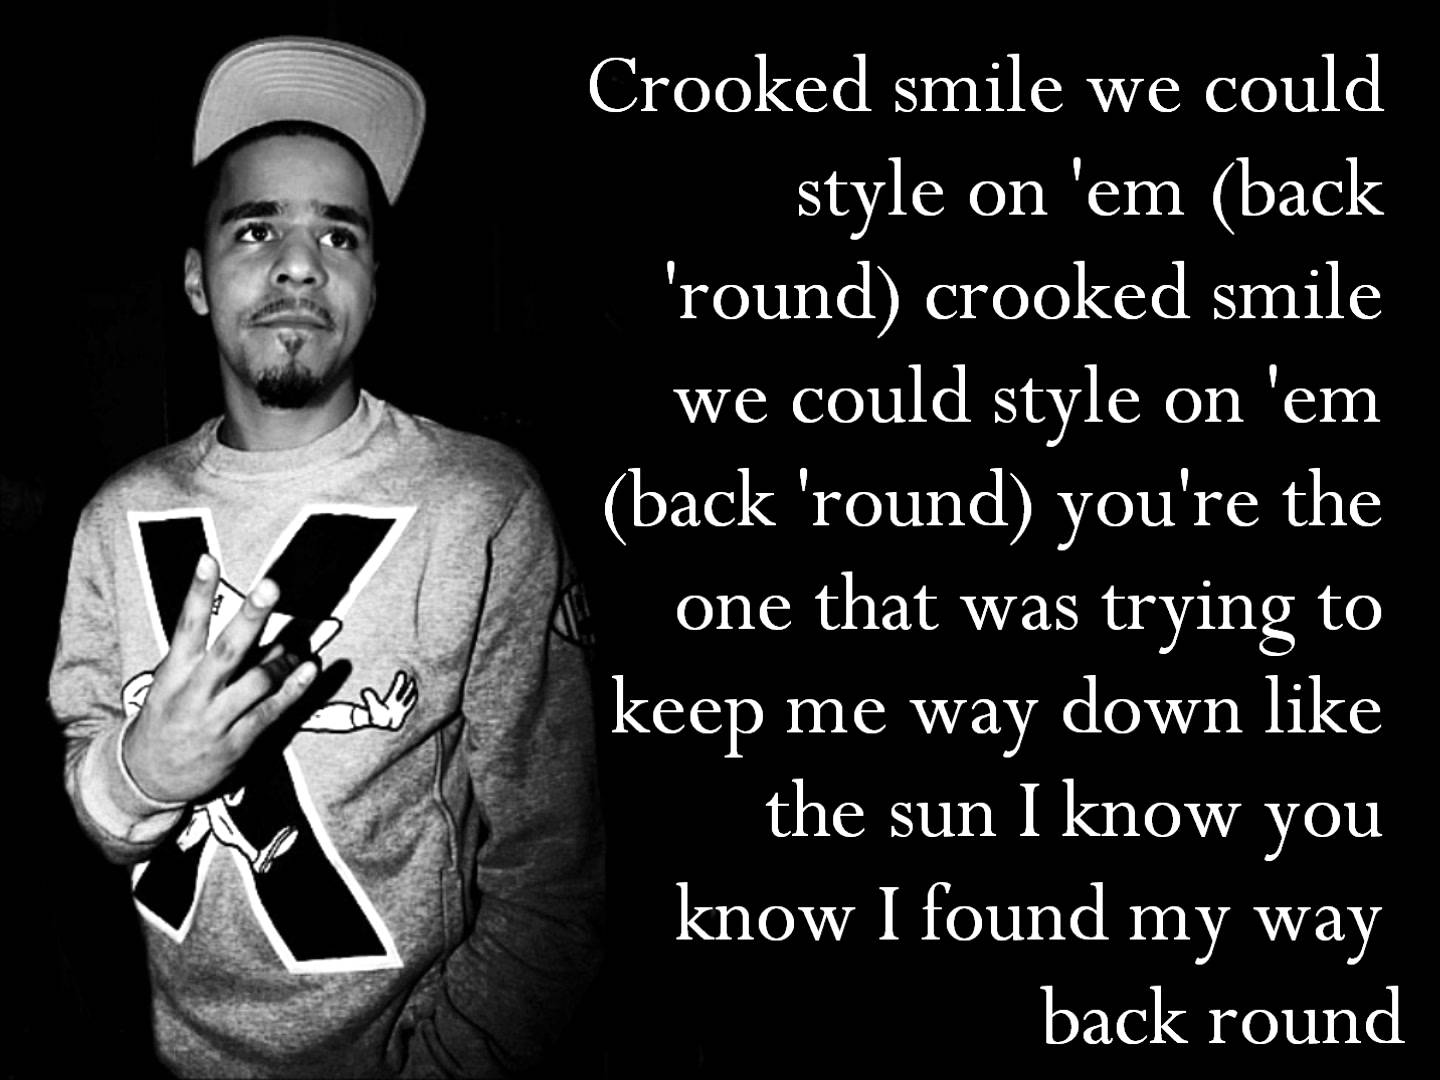 What does crooked smile mean